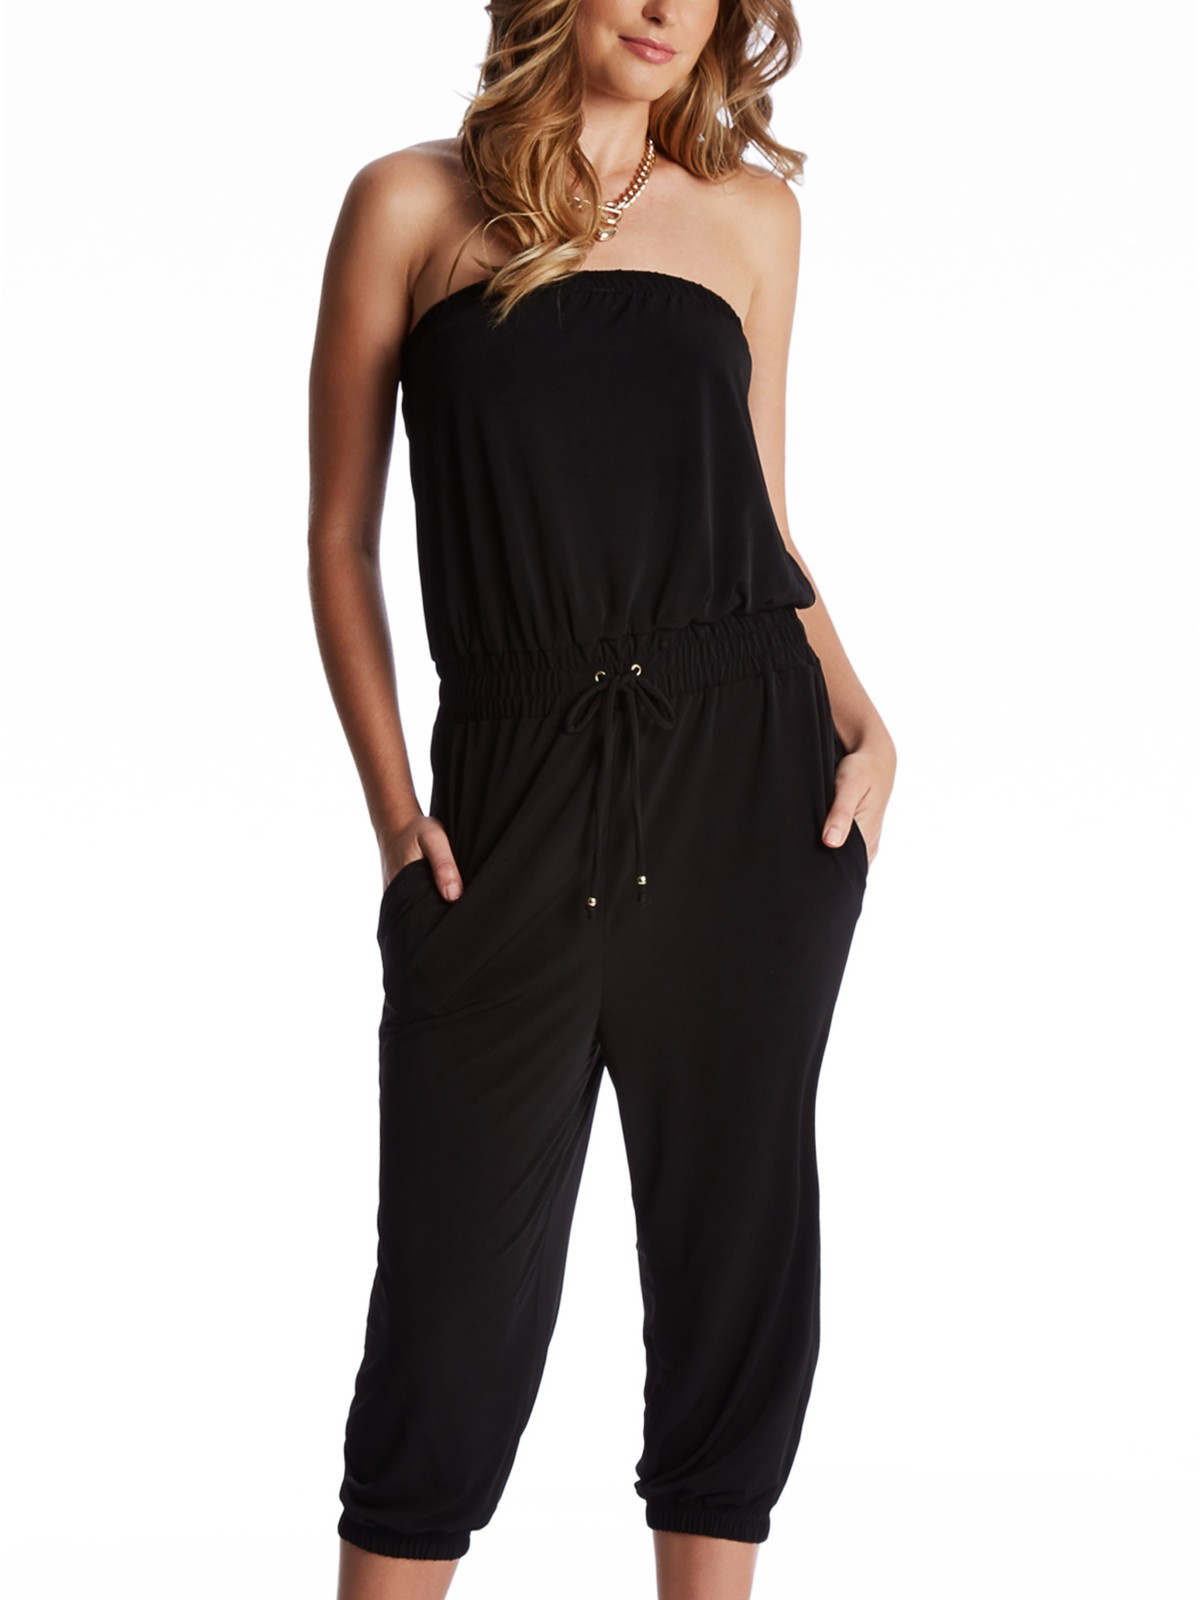 When you think of the carefree style that you love to wear during the warmer weather, a great romper definitely comes to mind. This one-piece style is comfortable, easy to wear and endlessly versatile when it comes to styling, and GoJane carries a wide selection that you're sure to love.